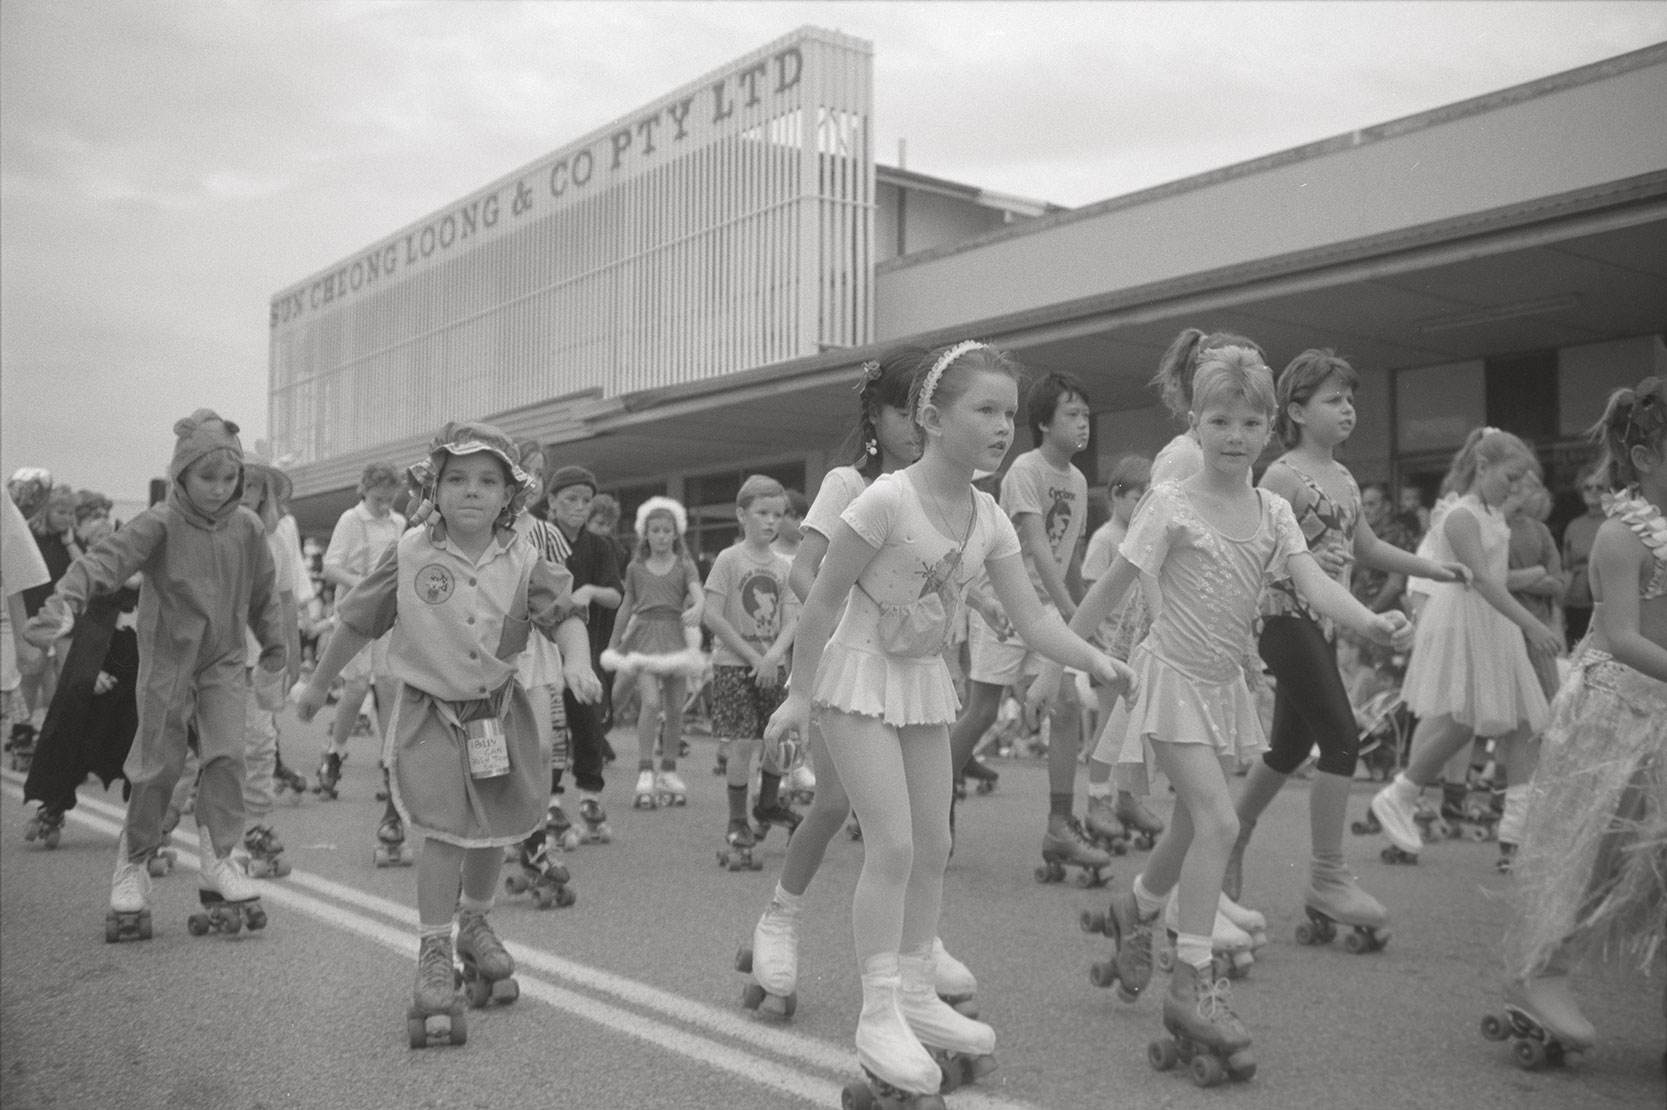 Bougainvillea parade, roller skaters on Knuckey Street Darwin, 2 June 1990<br />Image courtesy of Library & Archives NT,  Department of the Chief Minister, NTRS 3823 P1, Box 11, BW2910, Image 22